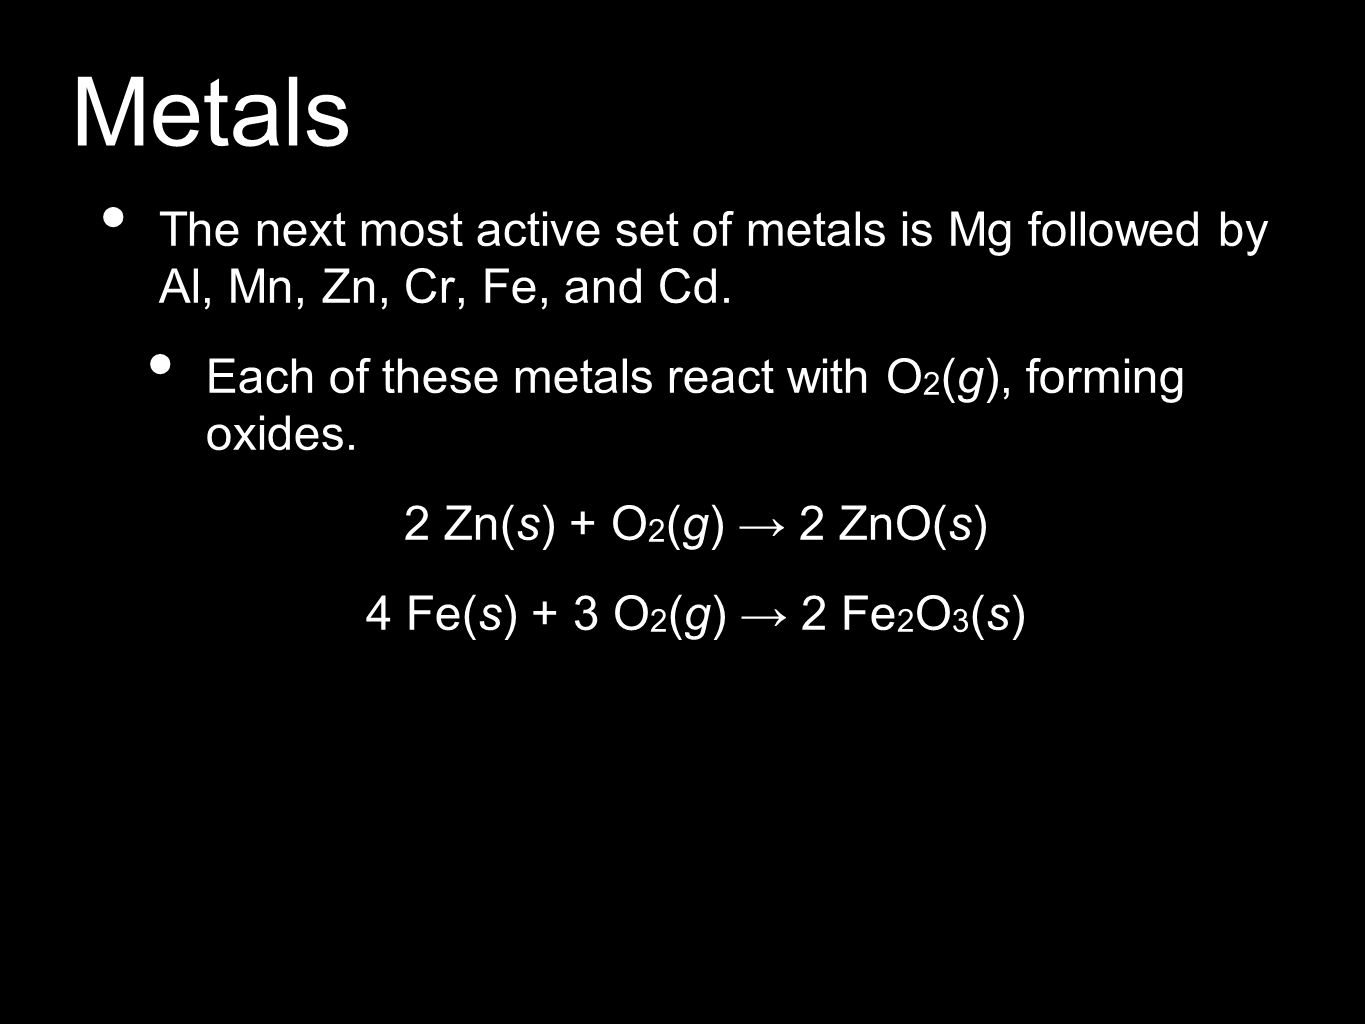 Metals The next most active set of metals is Mg followed by Al, Mn, Zn, Cr, Fe, and Cd. Each of these metals react with O2(g), forming oxides.